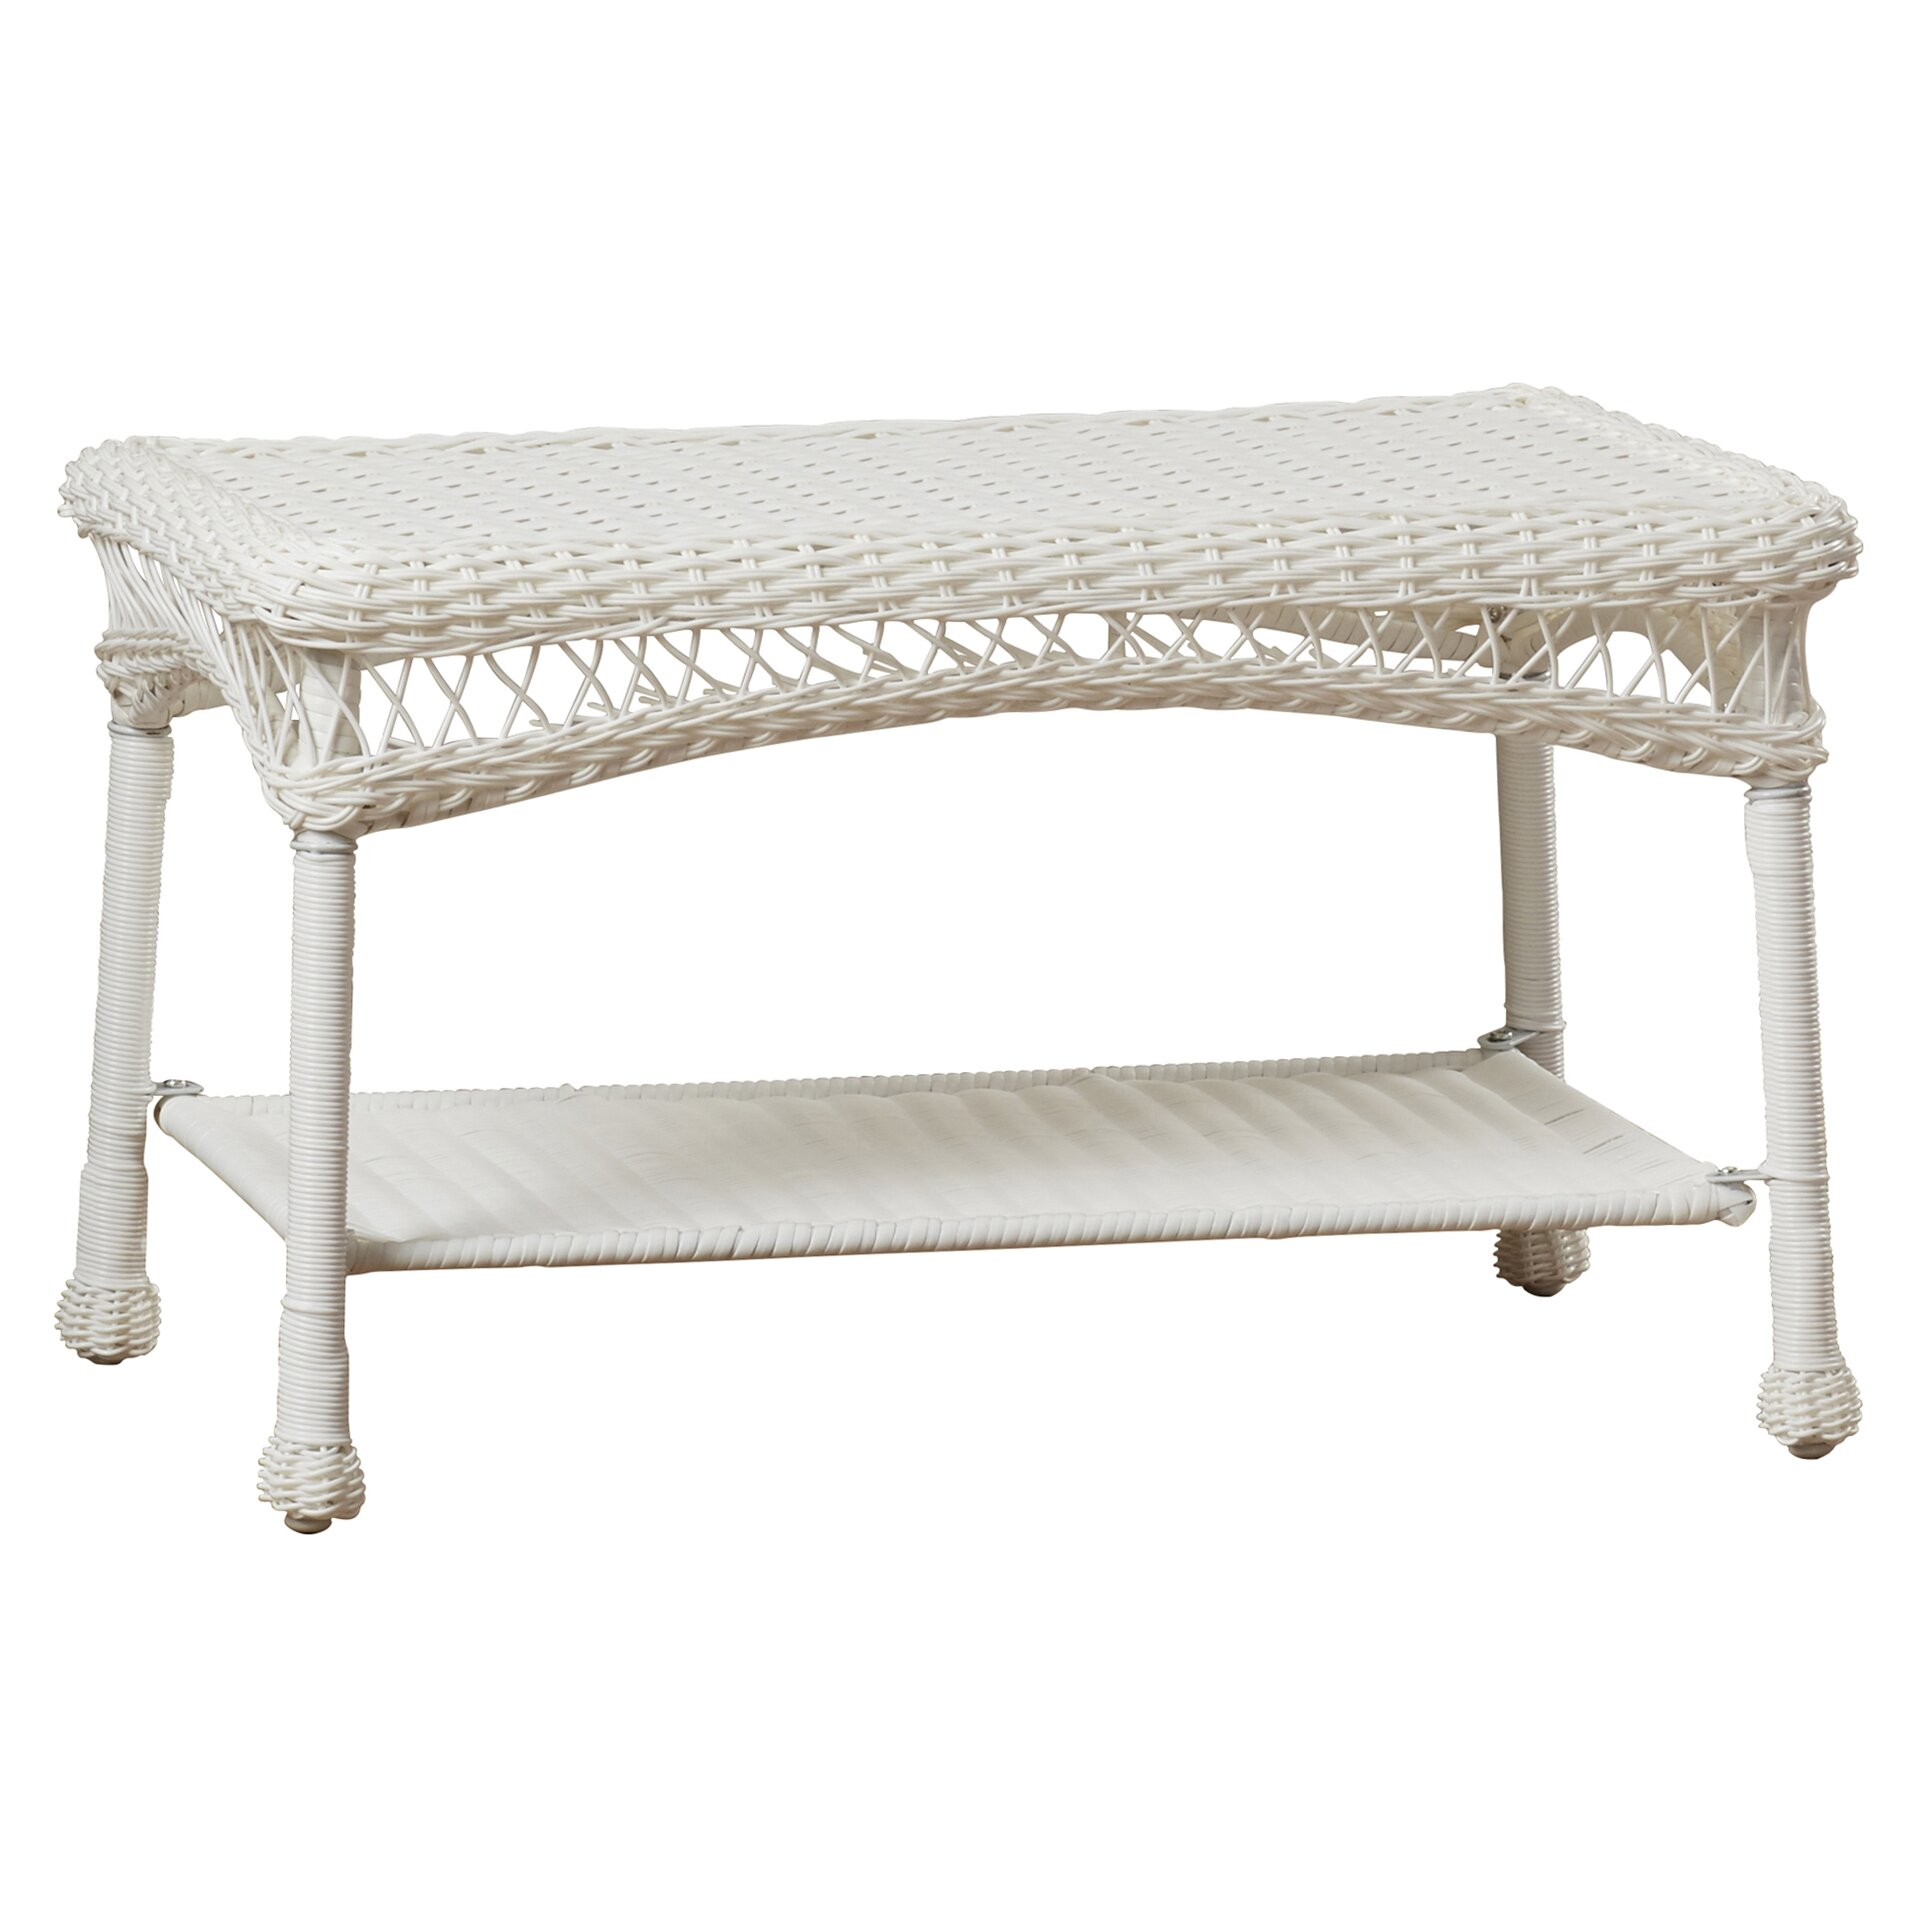 Charlton Home Forthill Wicker Patio Furniture Coffee Table Reviews